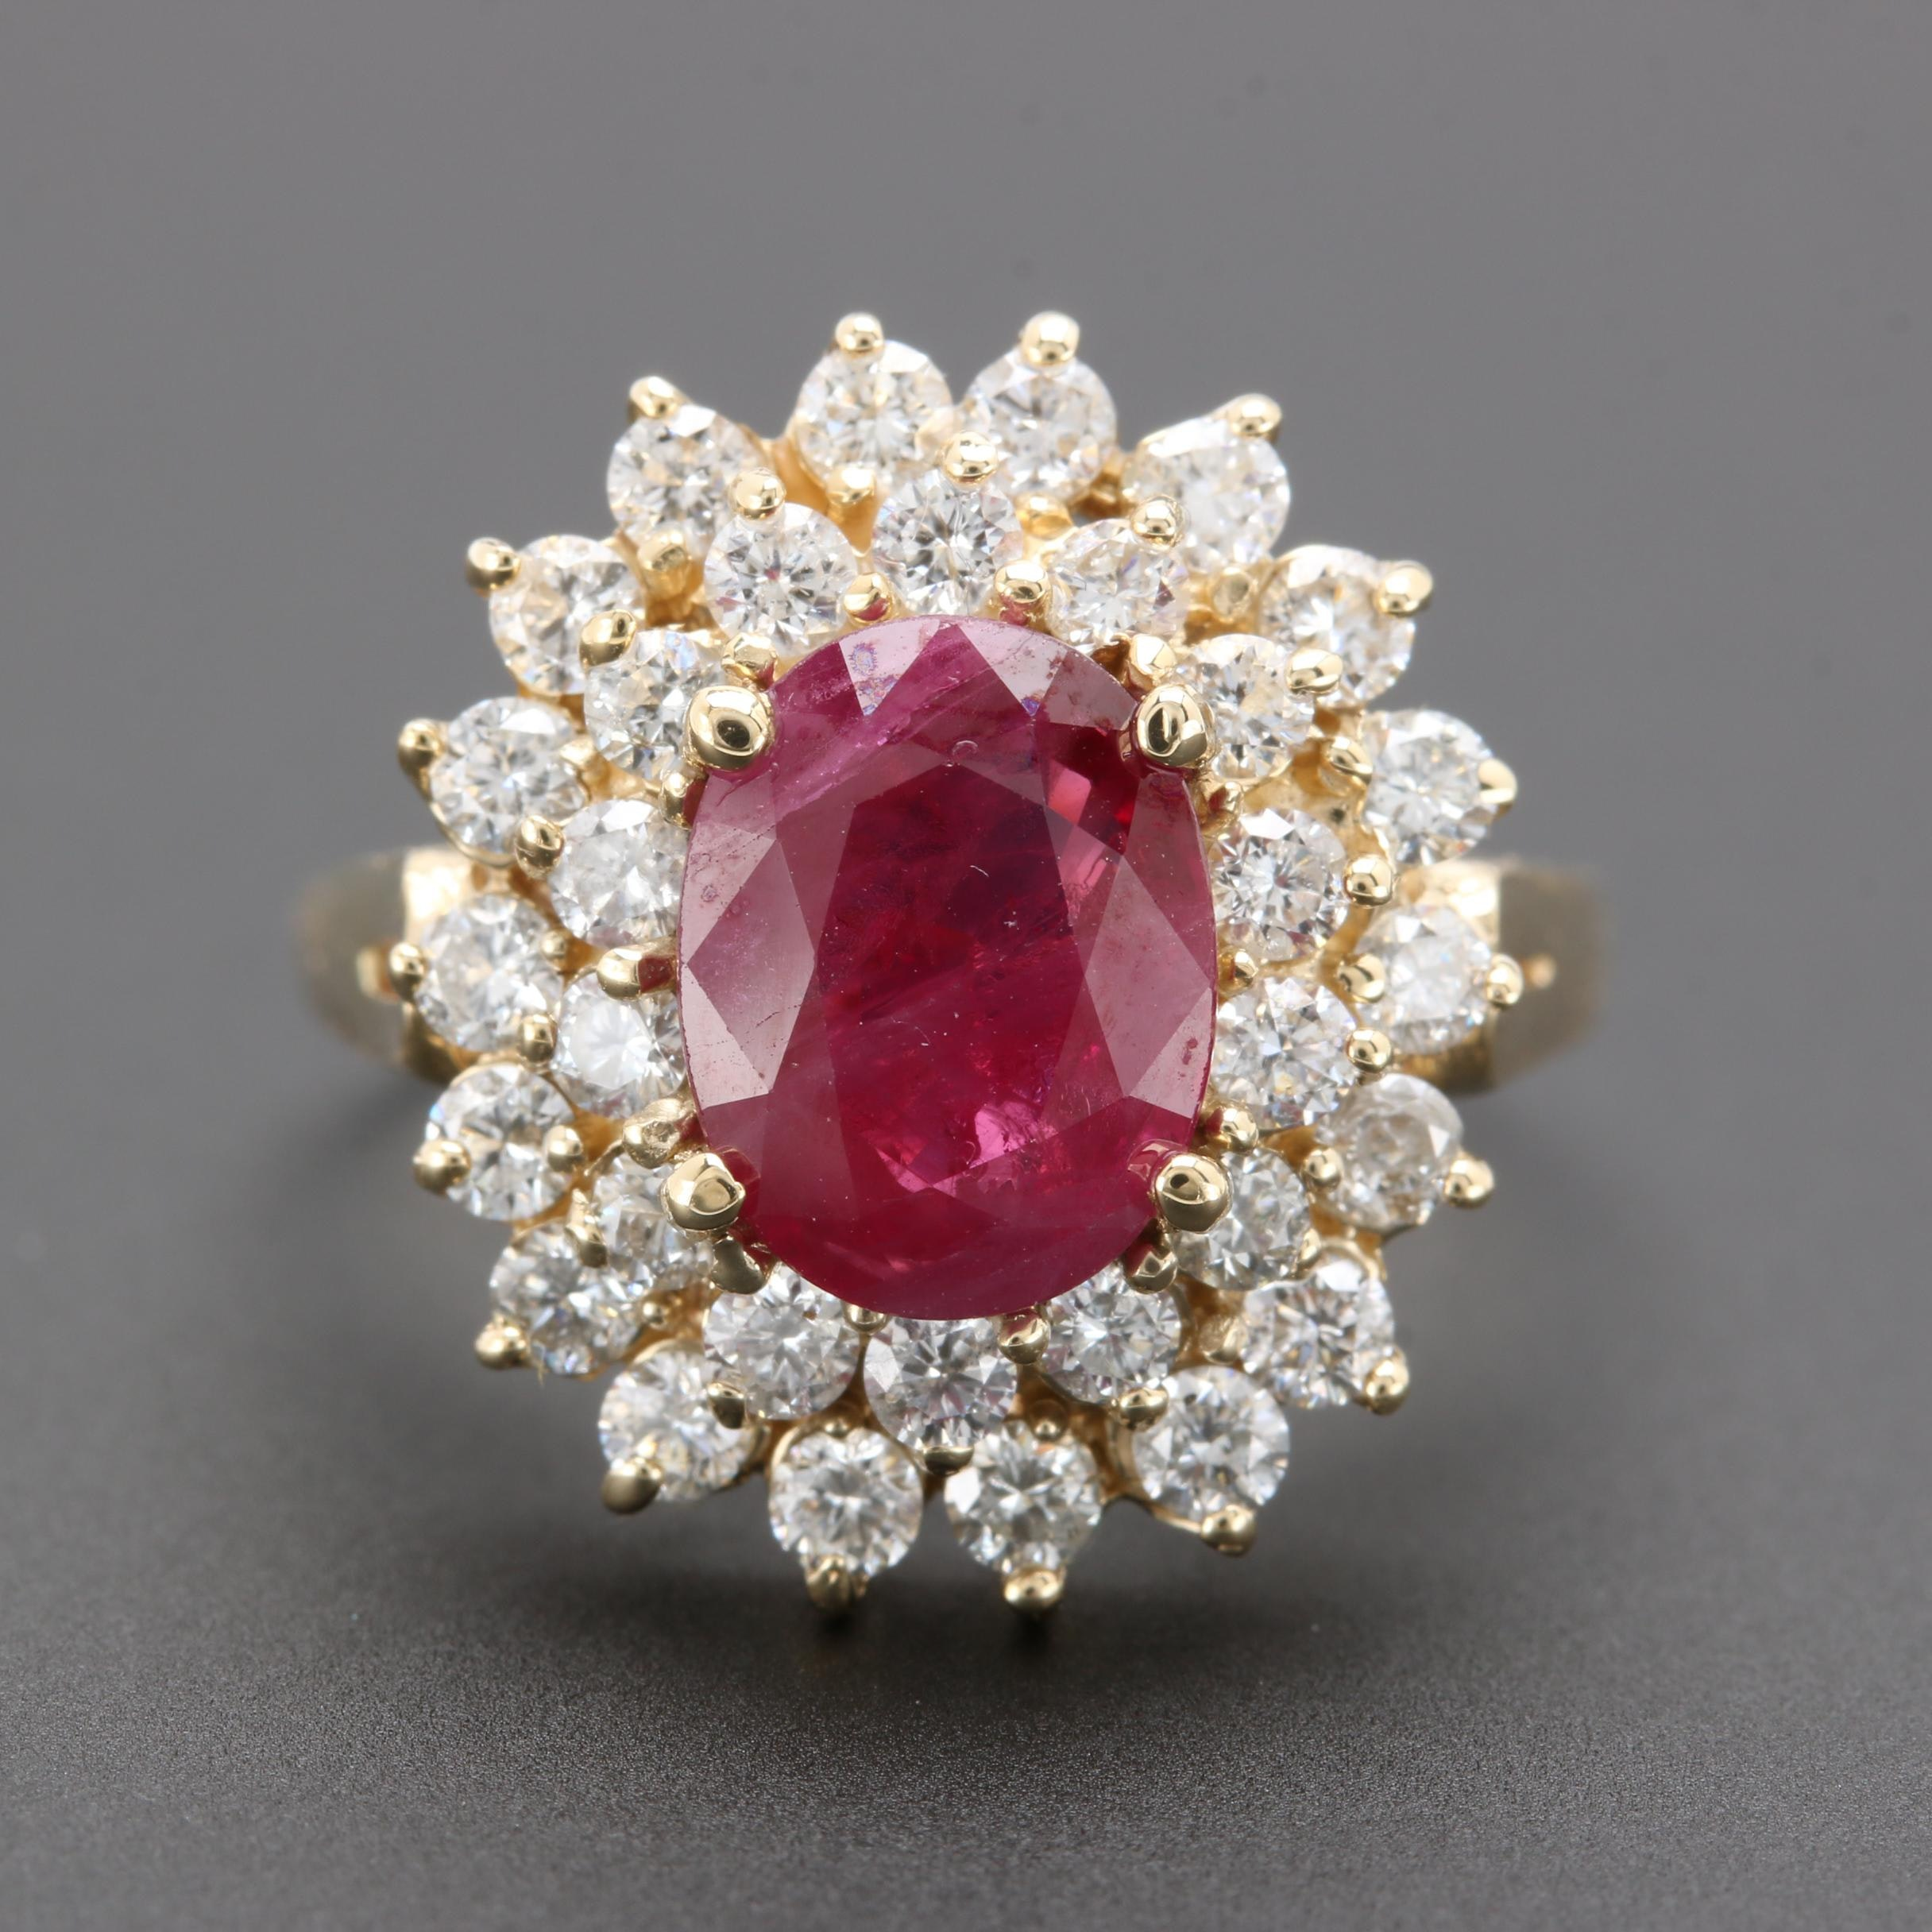 14K Yellow Gold 1.88 CT Ruby and 1.12 CTW Diamond Ring